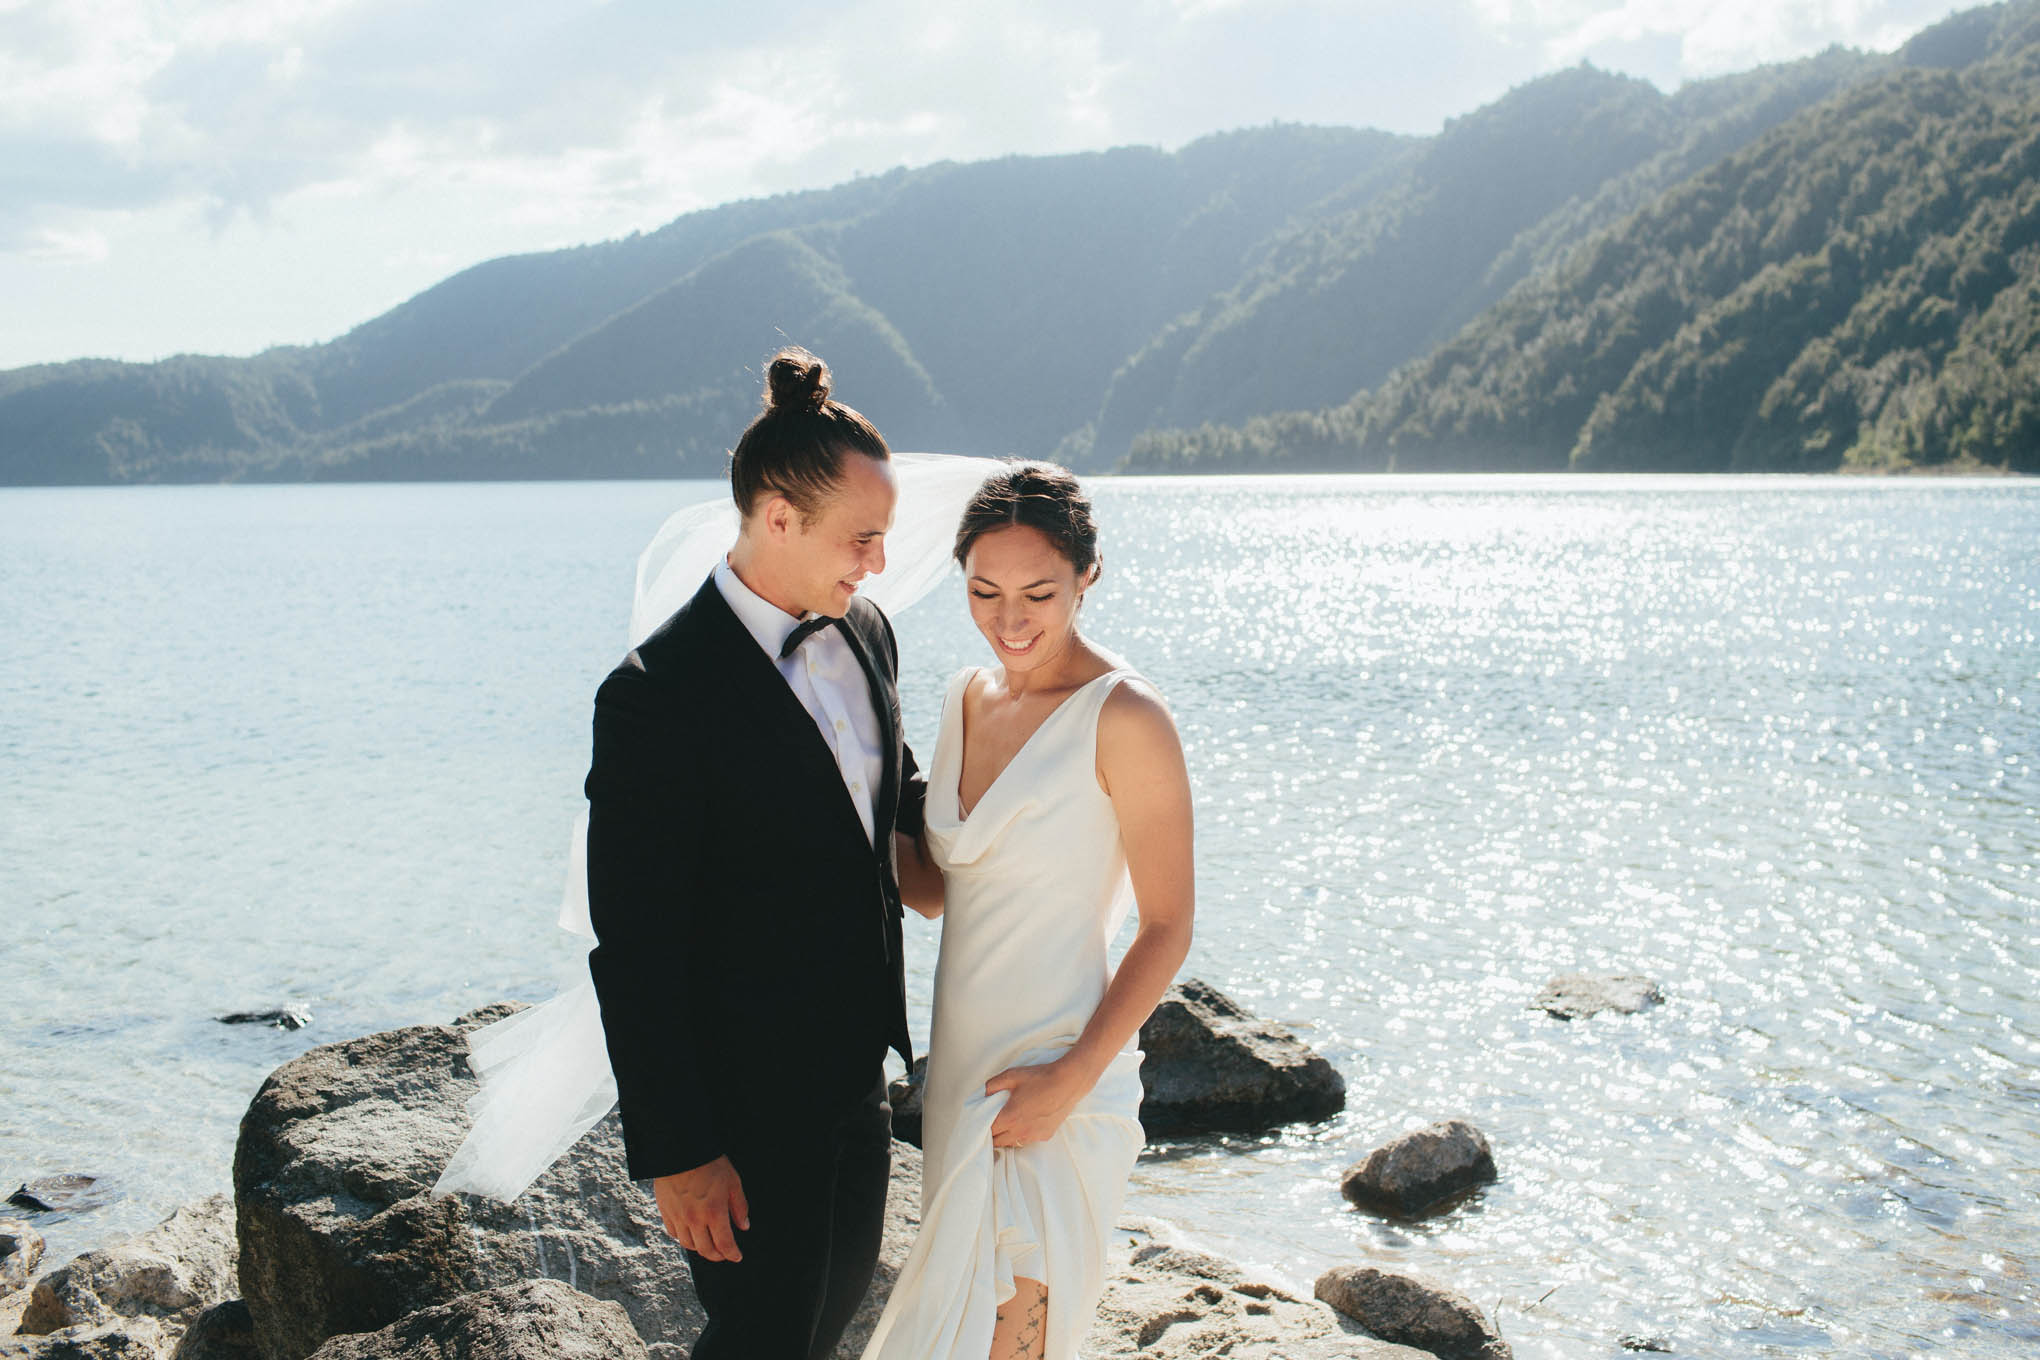 Categories: Weddings-Real Wedding: Bailey & Te Miri - Photography by Tim Kelly and Nadine Ellen